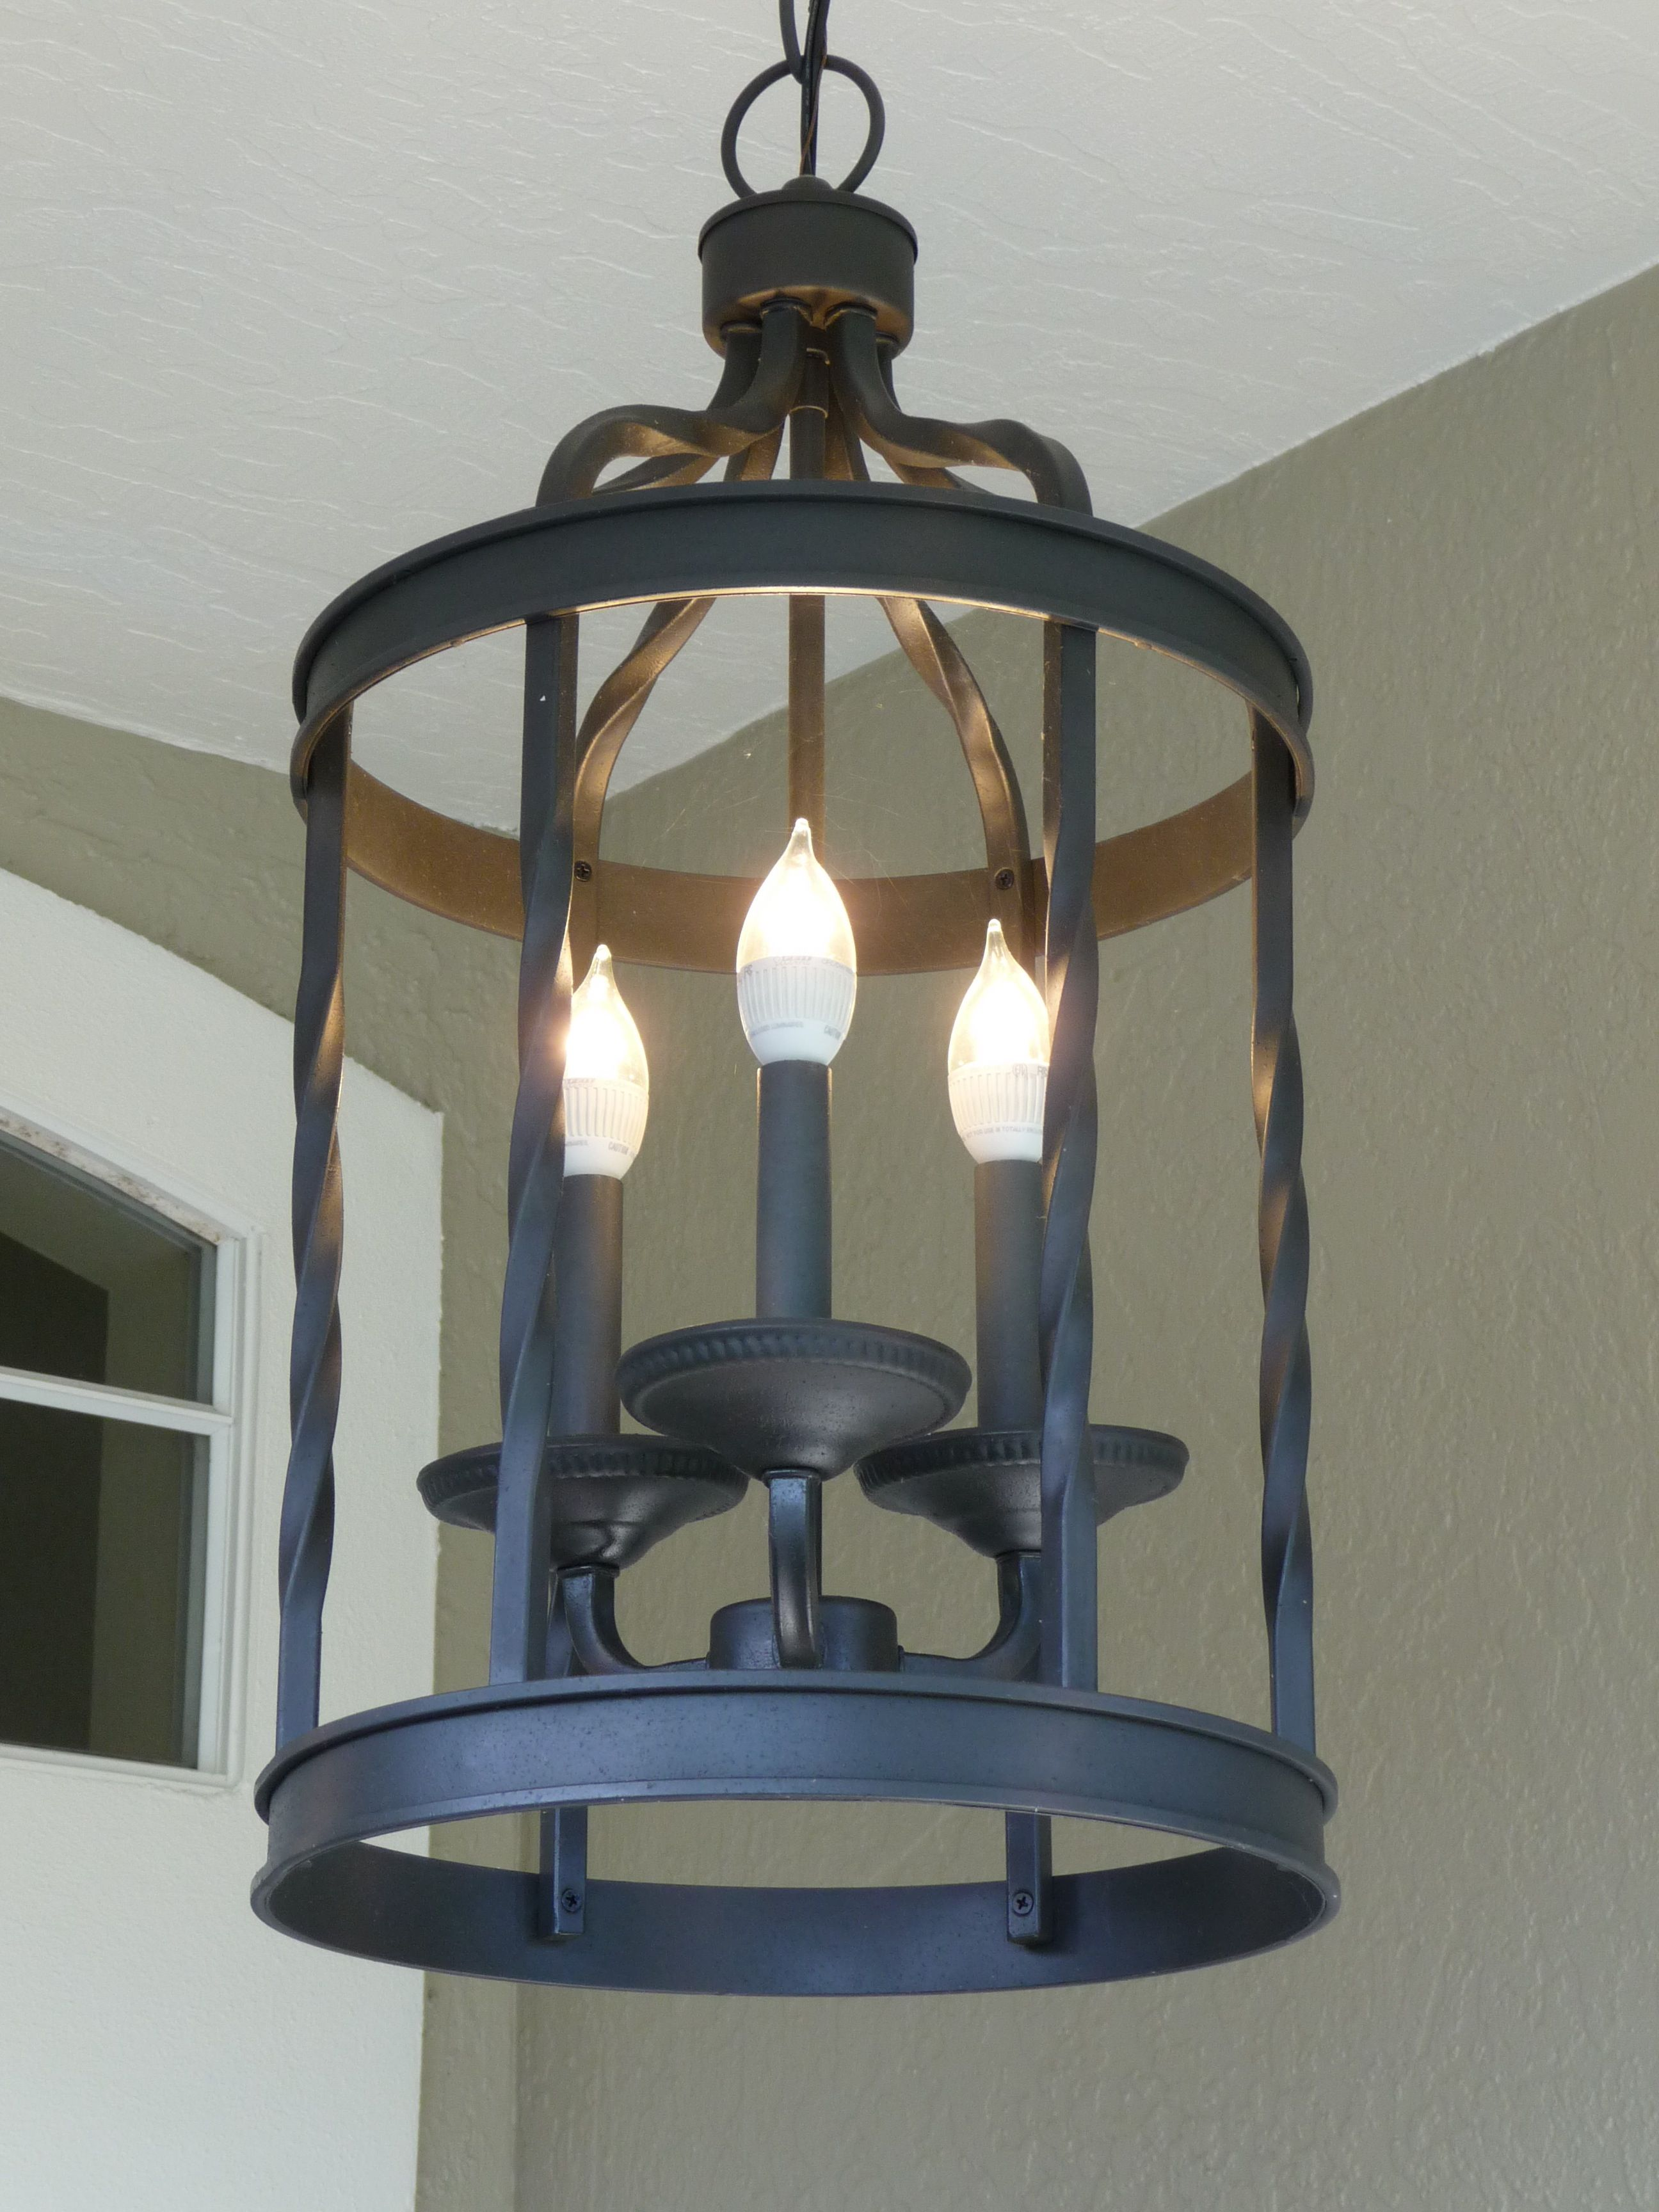 This Outdoor Chandelier Illuminates My Front Entrance With 3 Dimmable 40 Watt Equivalent Led Bulbs And The Best Part Is That Bugs Are Not